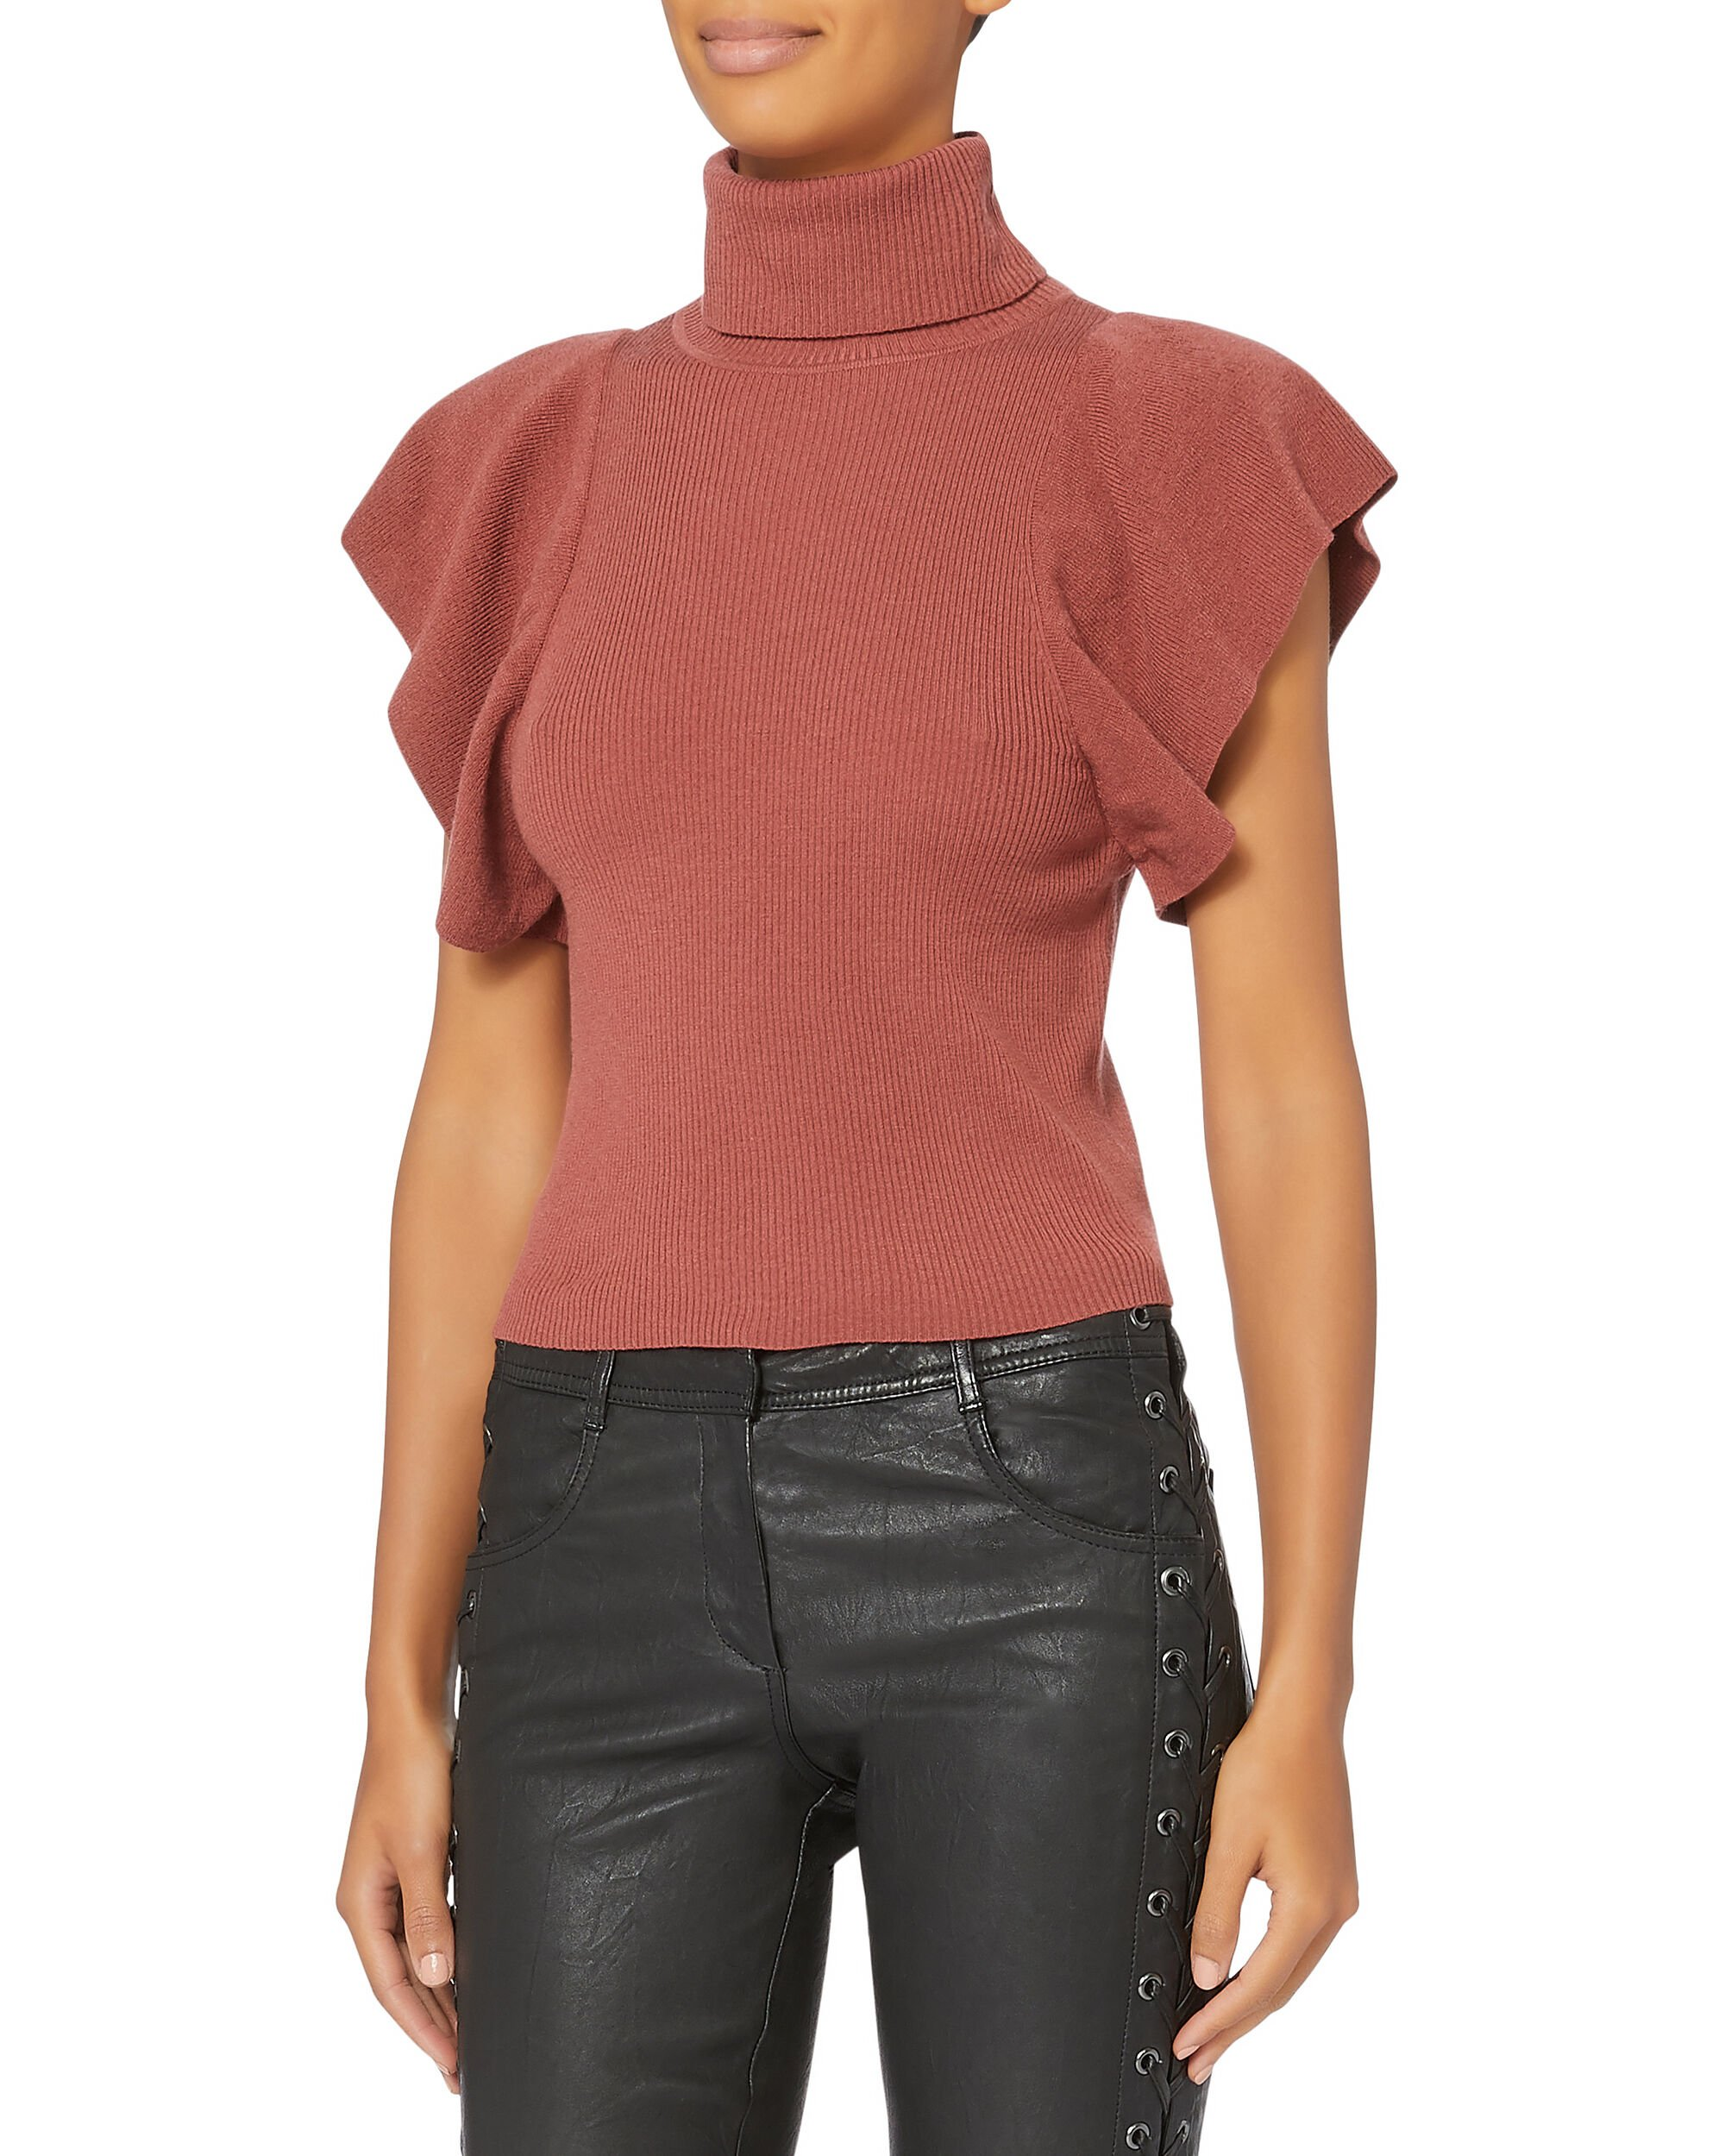 Jae Ruffle Knit Red Top, RED, hi-res